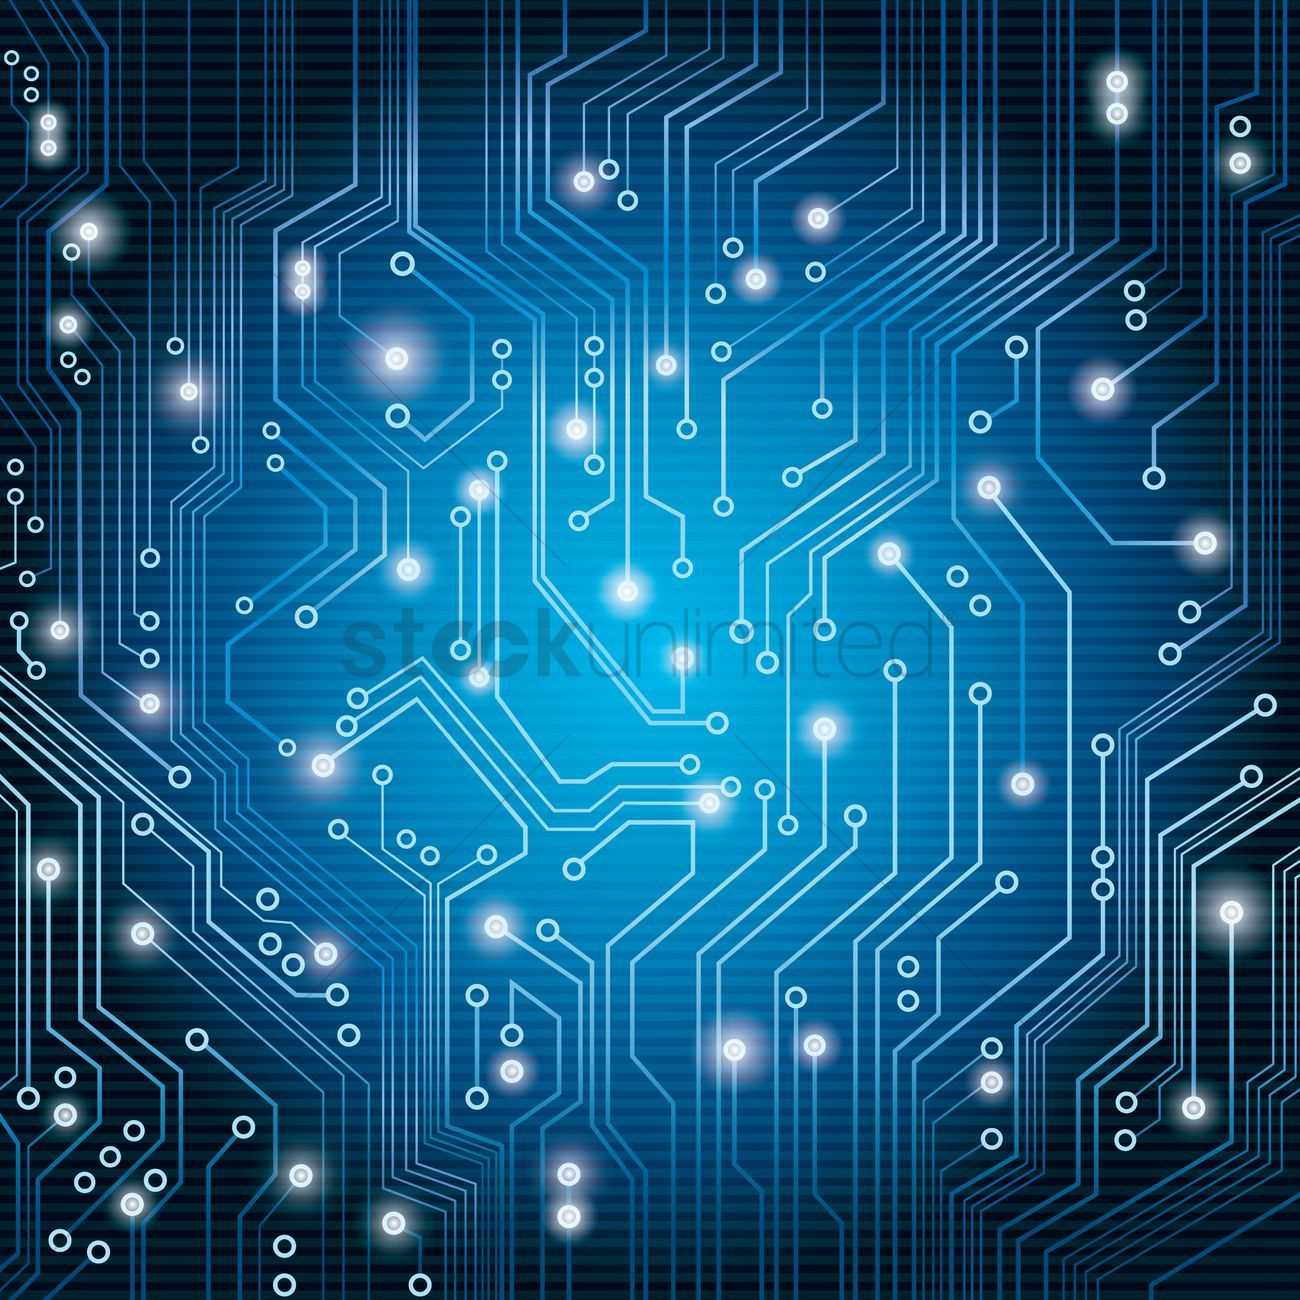 blue circuit board vector graphic.